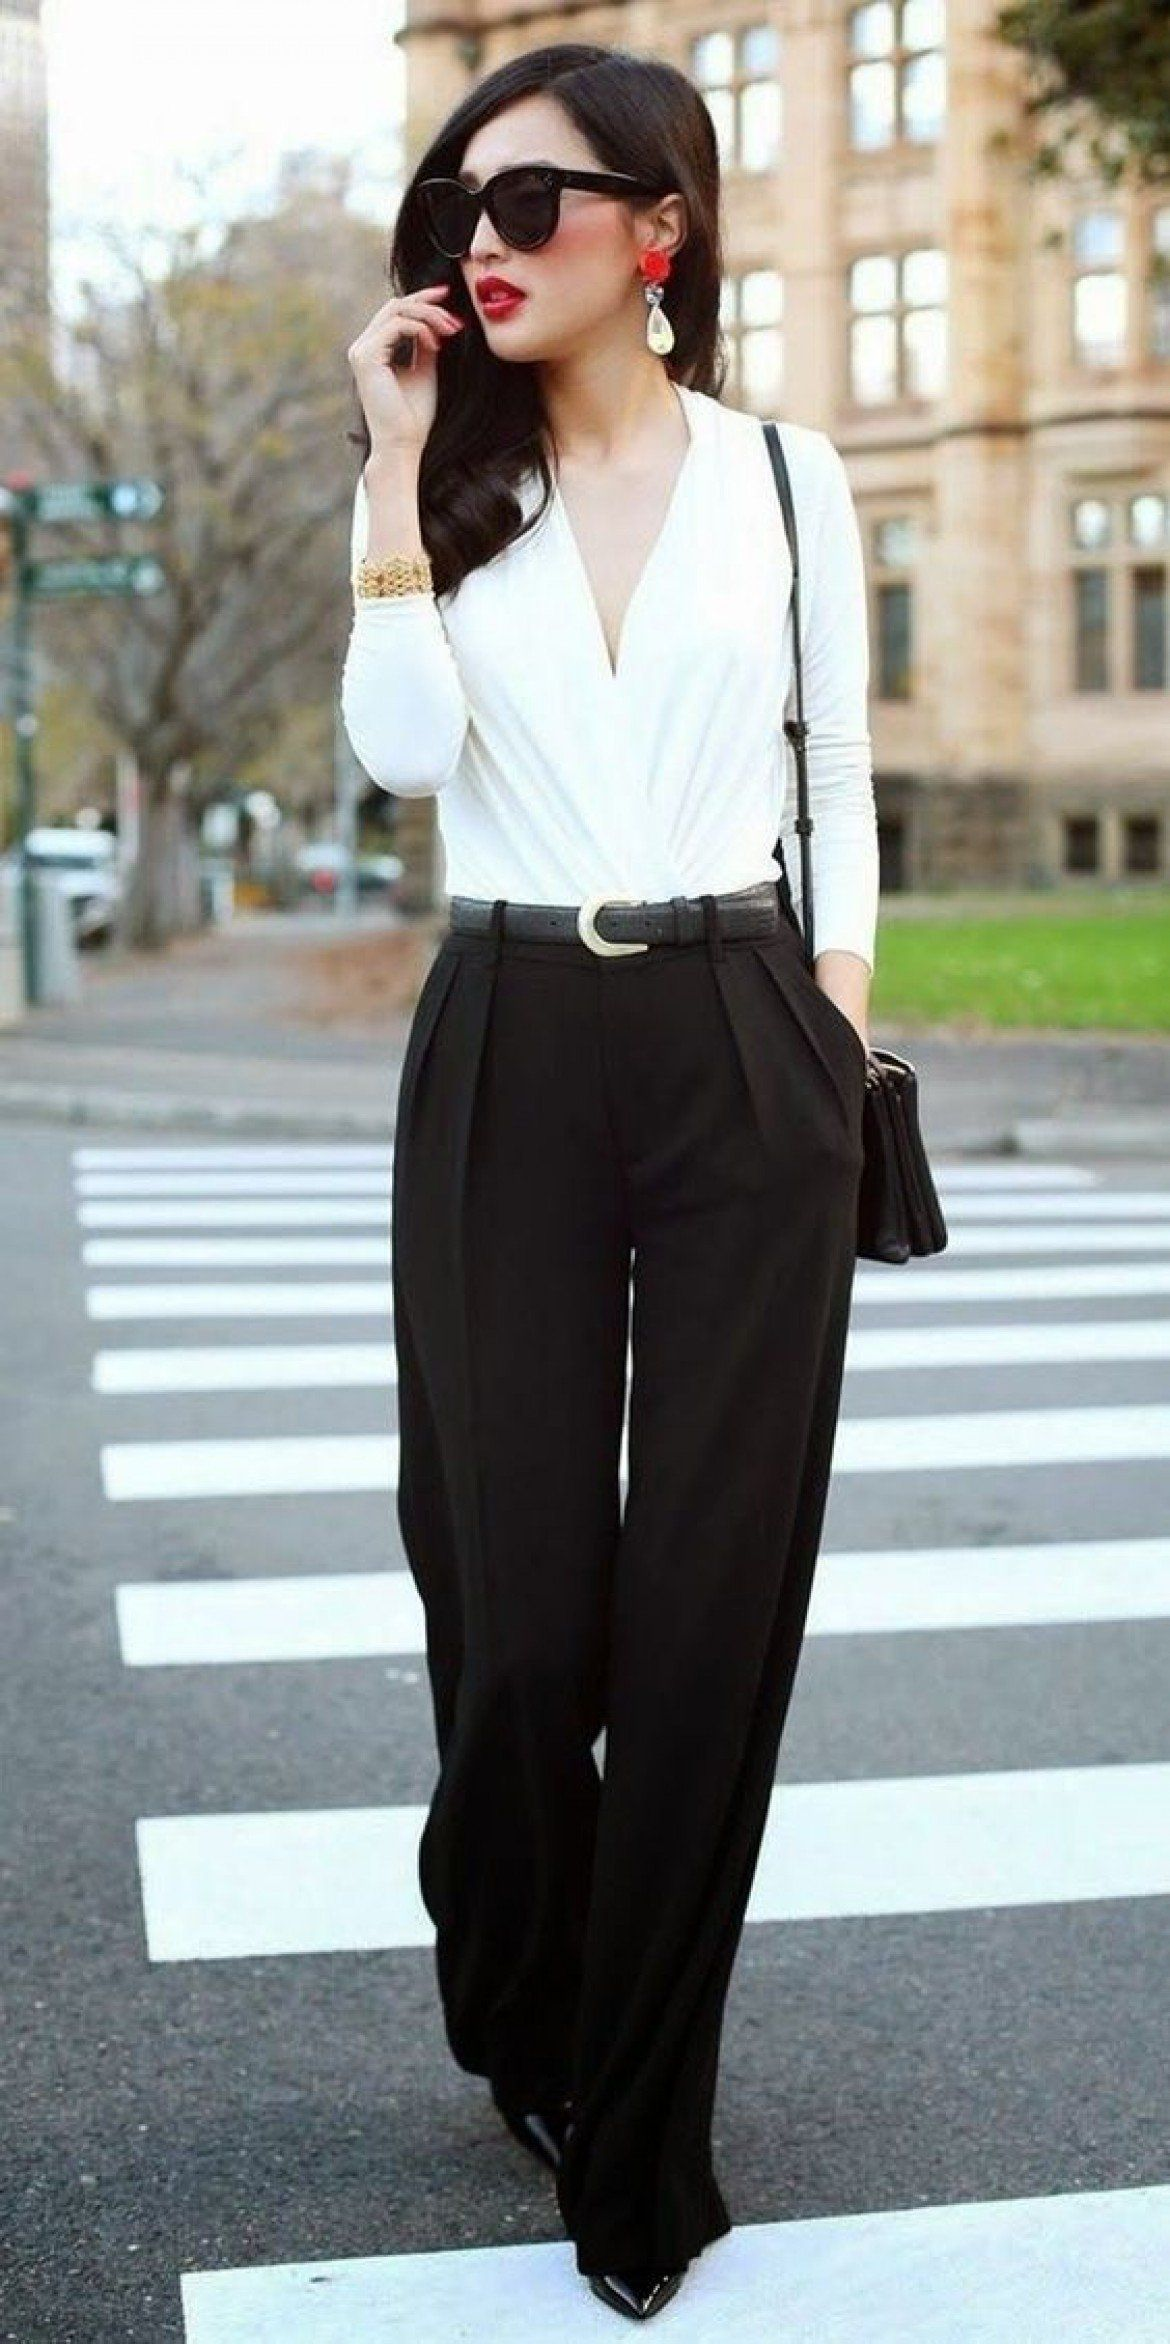 20 outfit ideas that you can use at work and will make you look incredibly beautiful